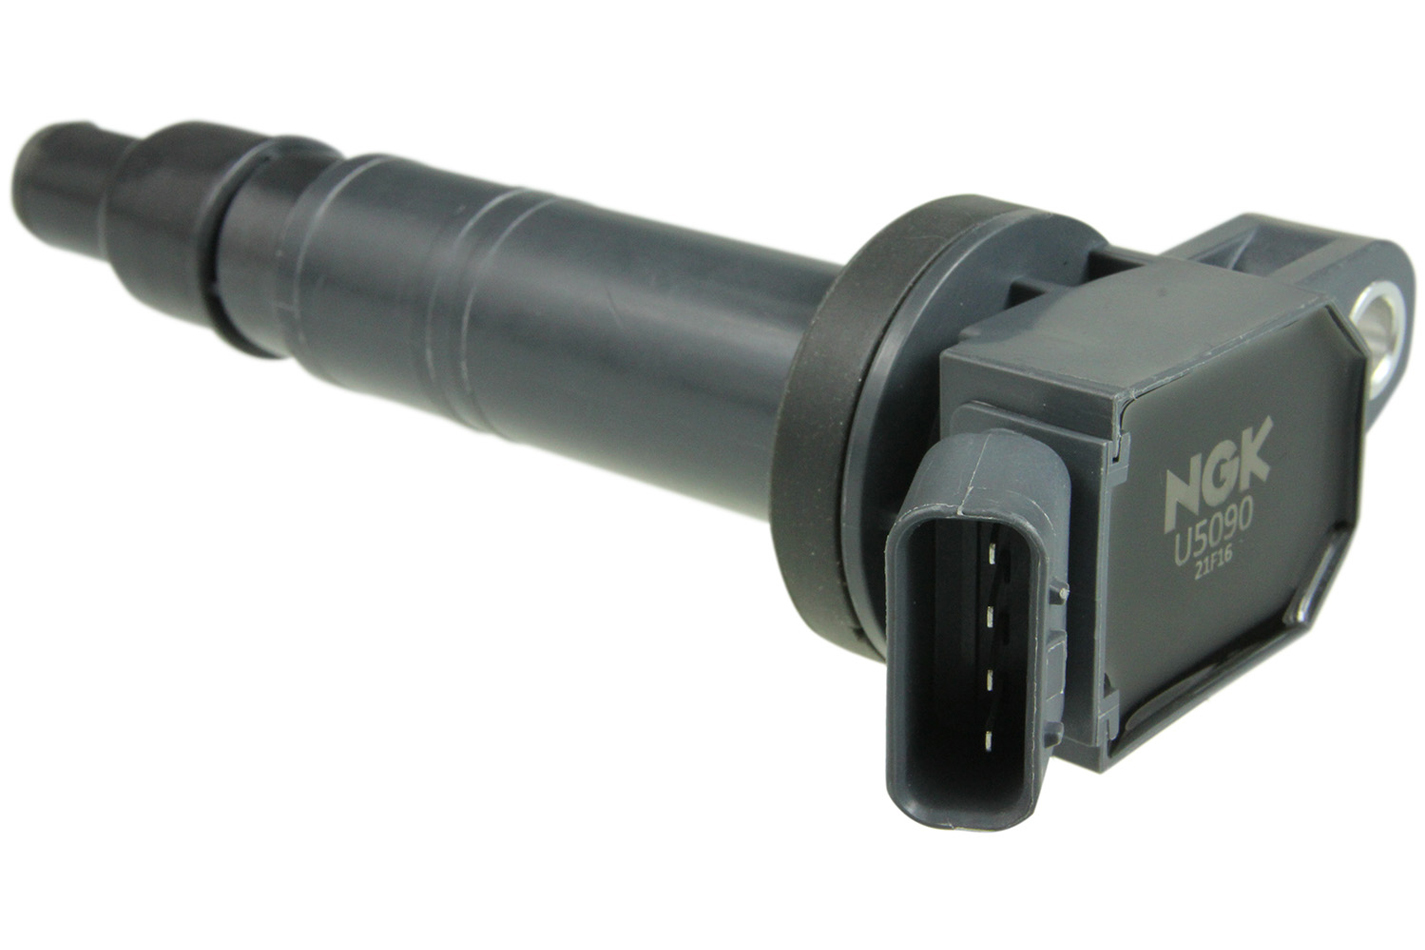 NGK U5090 Ignition Coil Pack, Coil-On-Plug Pencil Type, OE Specs, Black, Each